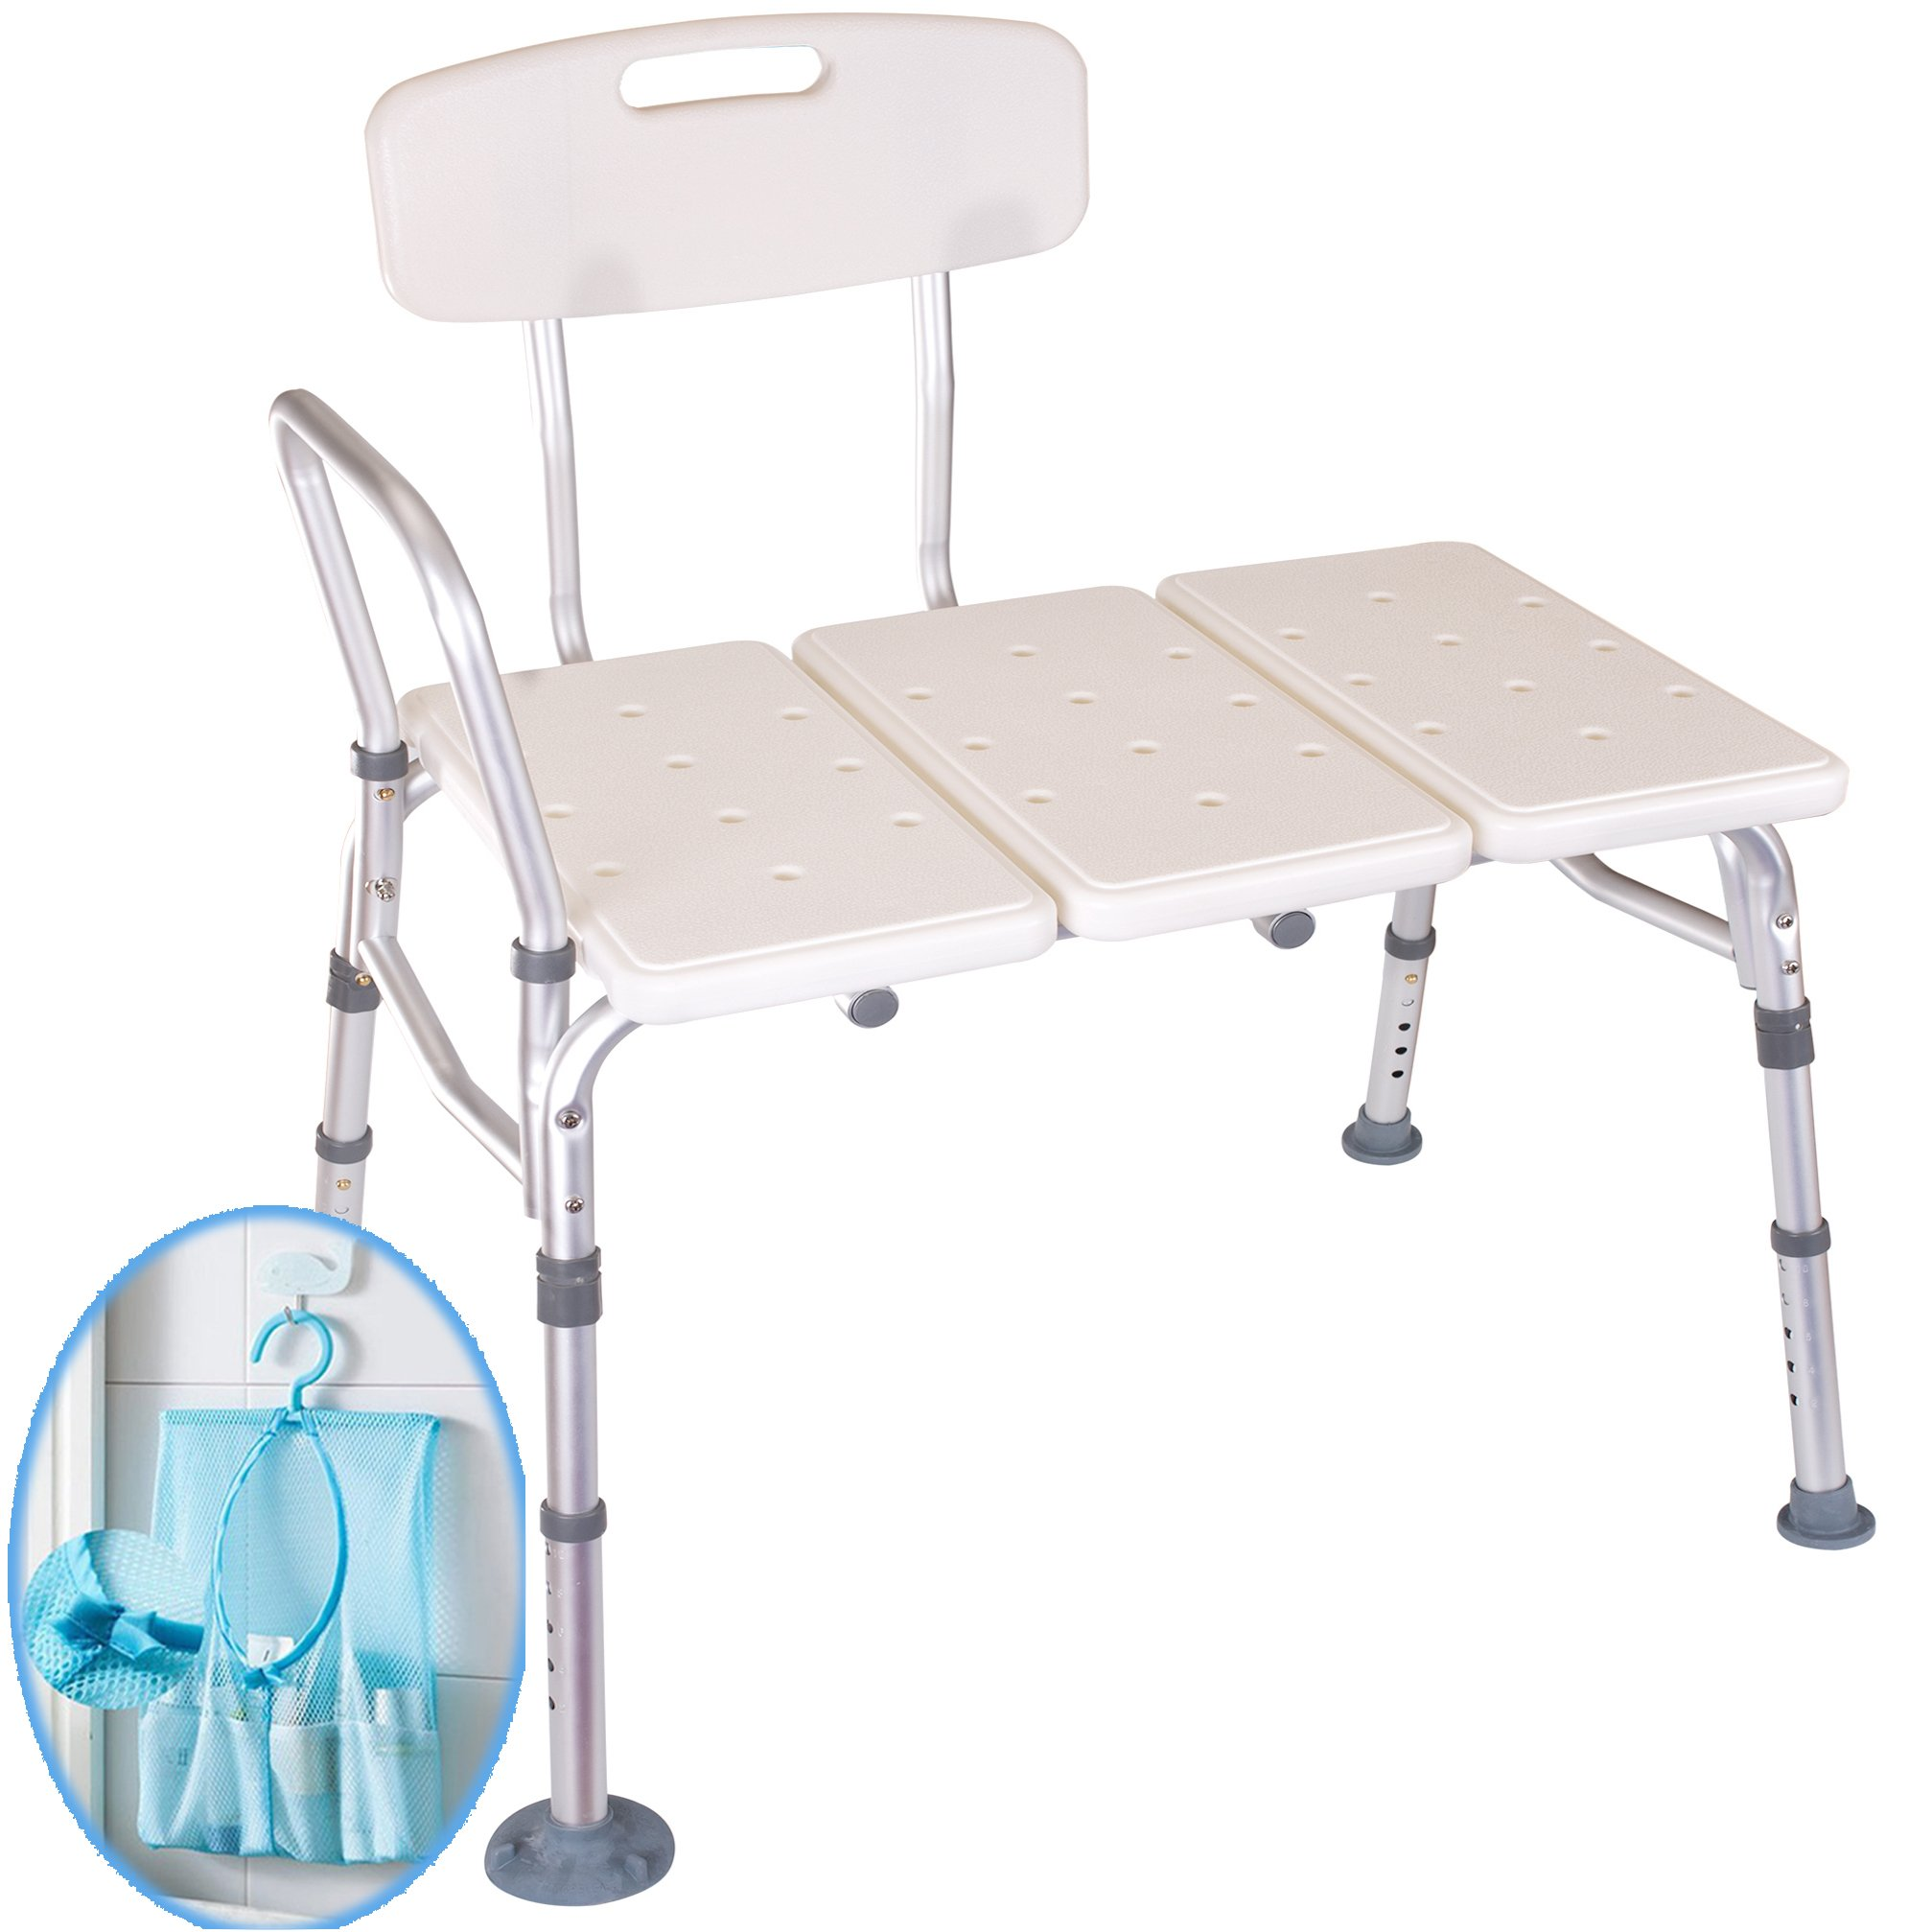 Medokare Tub Transfer Bath Bench - Bath Seat with Shower Tote Bag, Tubside Benches, Handicap Shower Seat for Adults, Elderly Seniors Shower Stool Seats (White Shower Bench)